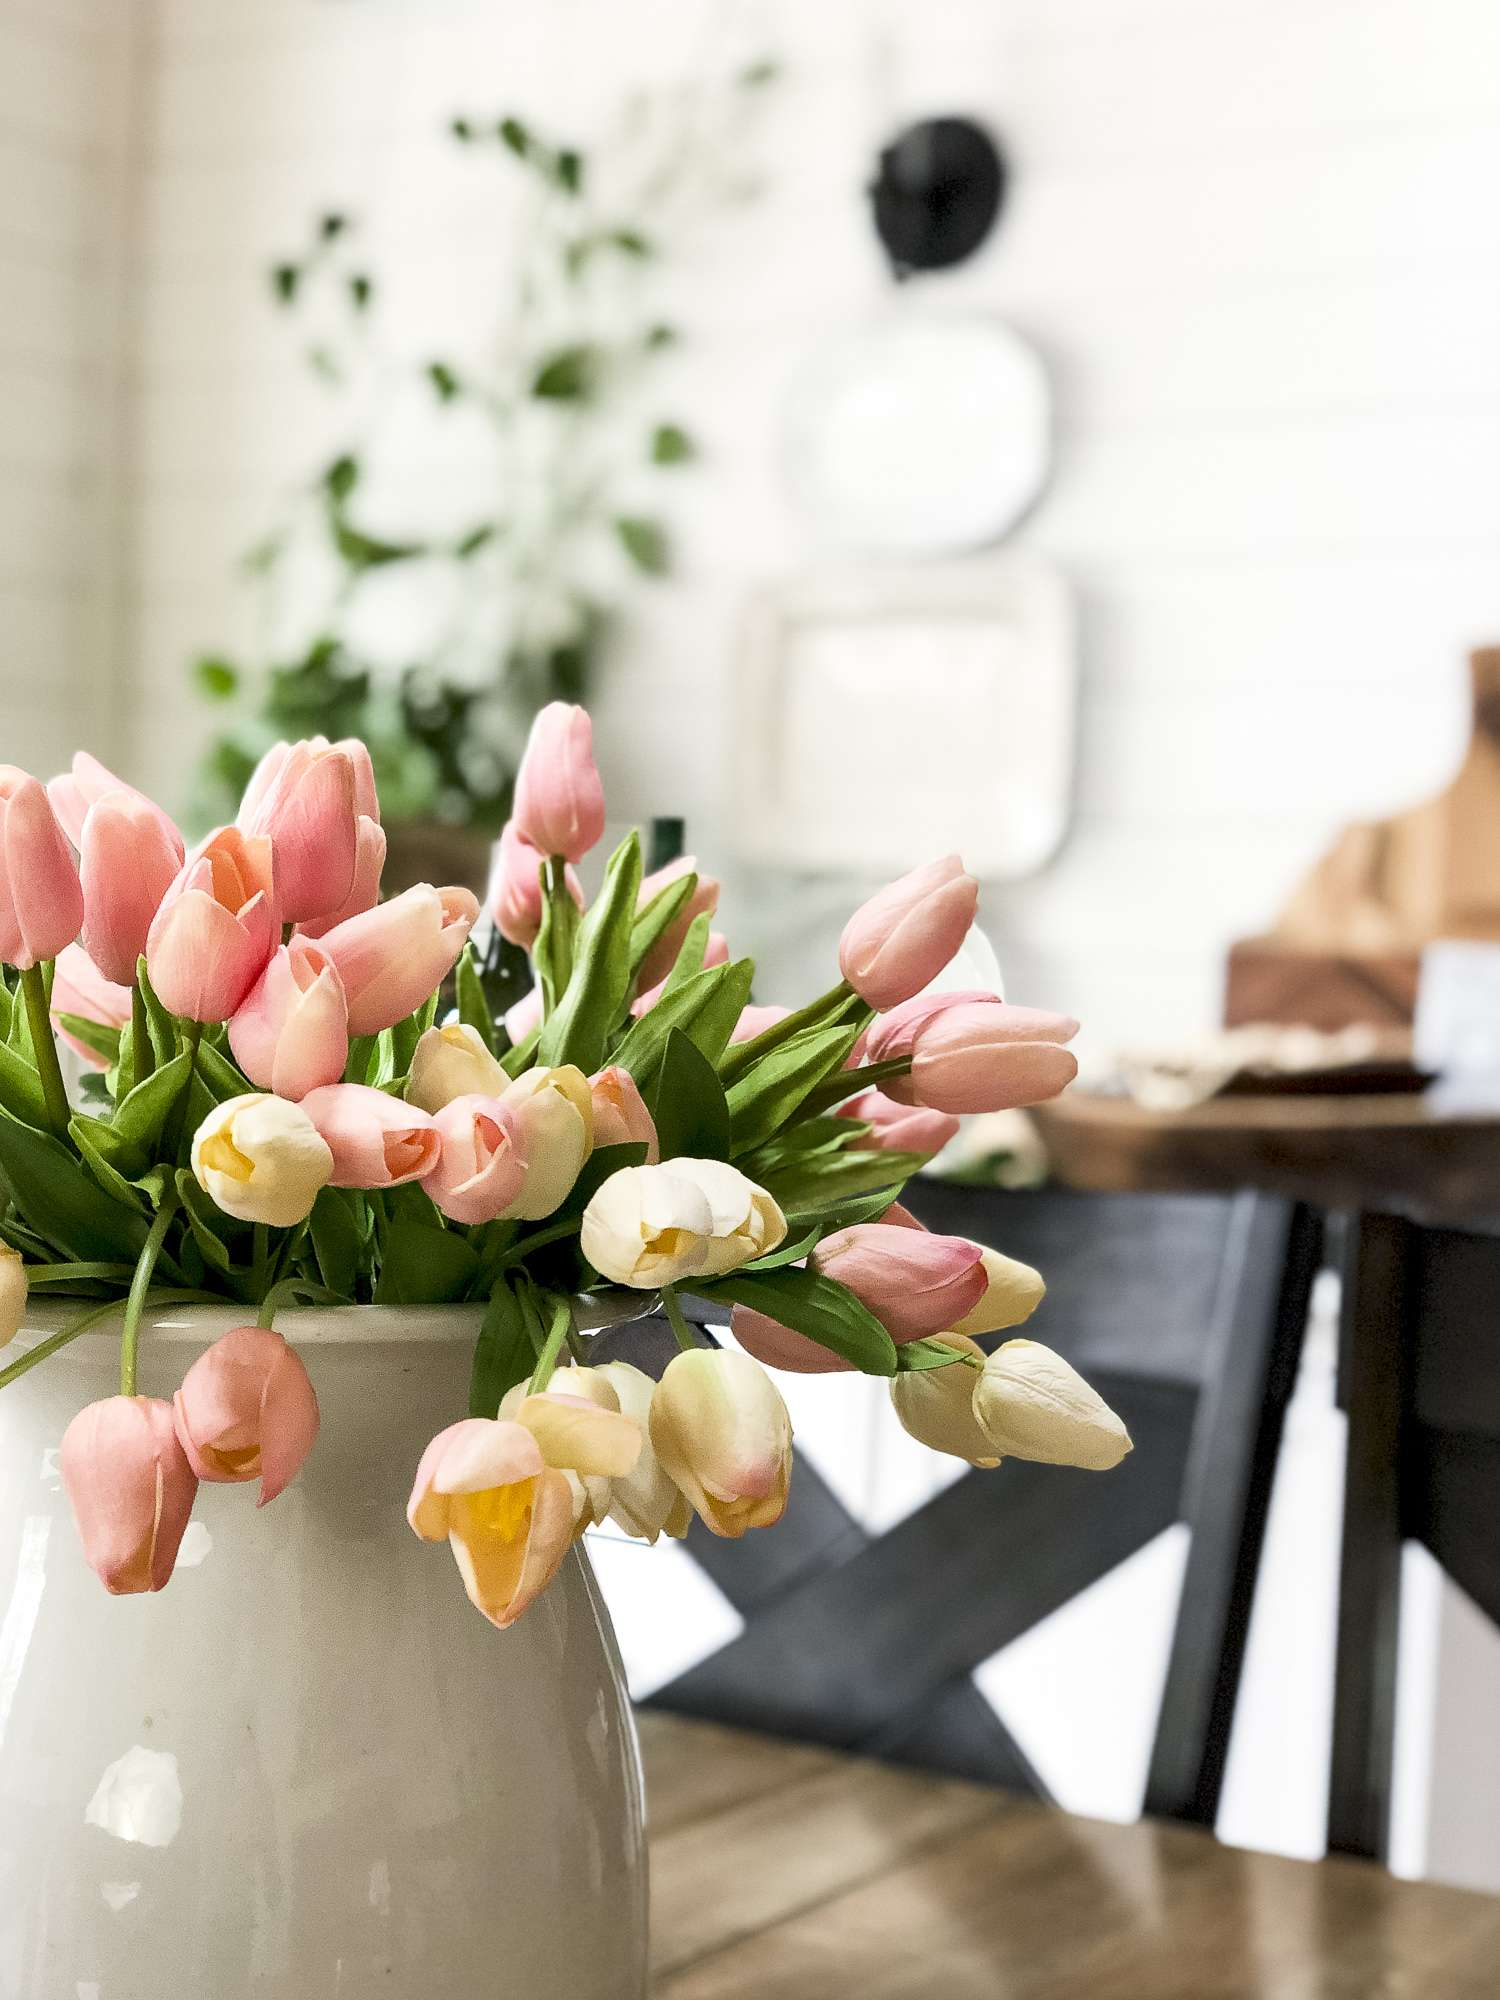 Are you looking for Mother's Day gifts for your wife, your mom, your grandma, or just a special woman? I'm sharing cute mother's day gift ideas today. #fromhousetohaven #mothersday #giftguide